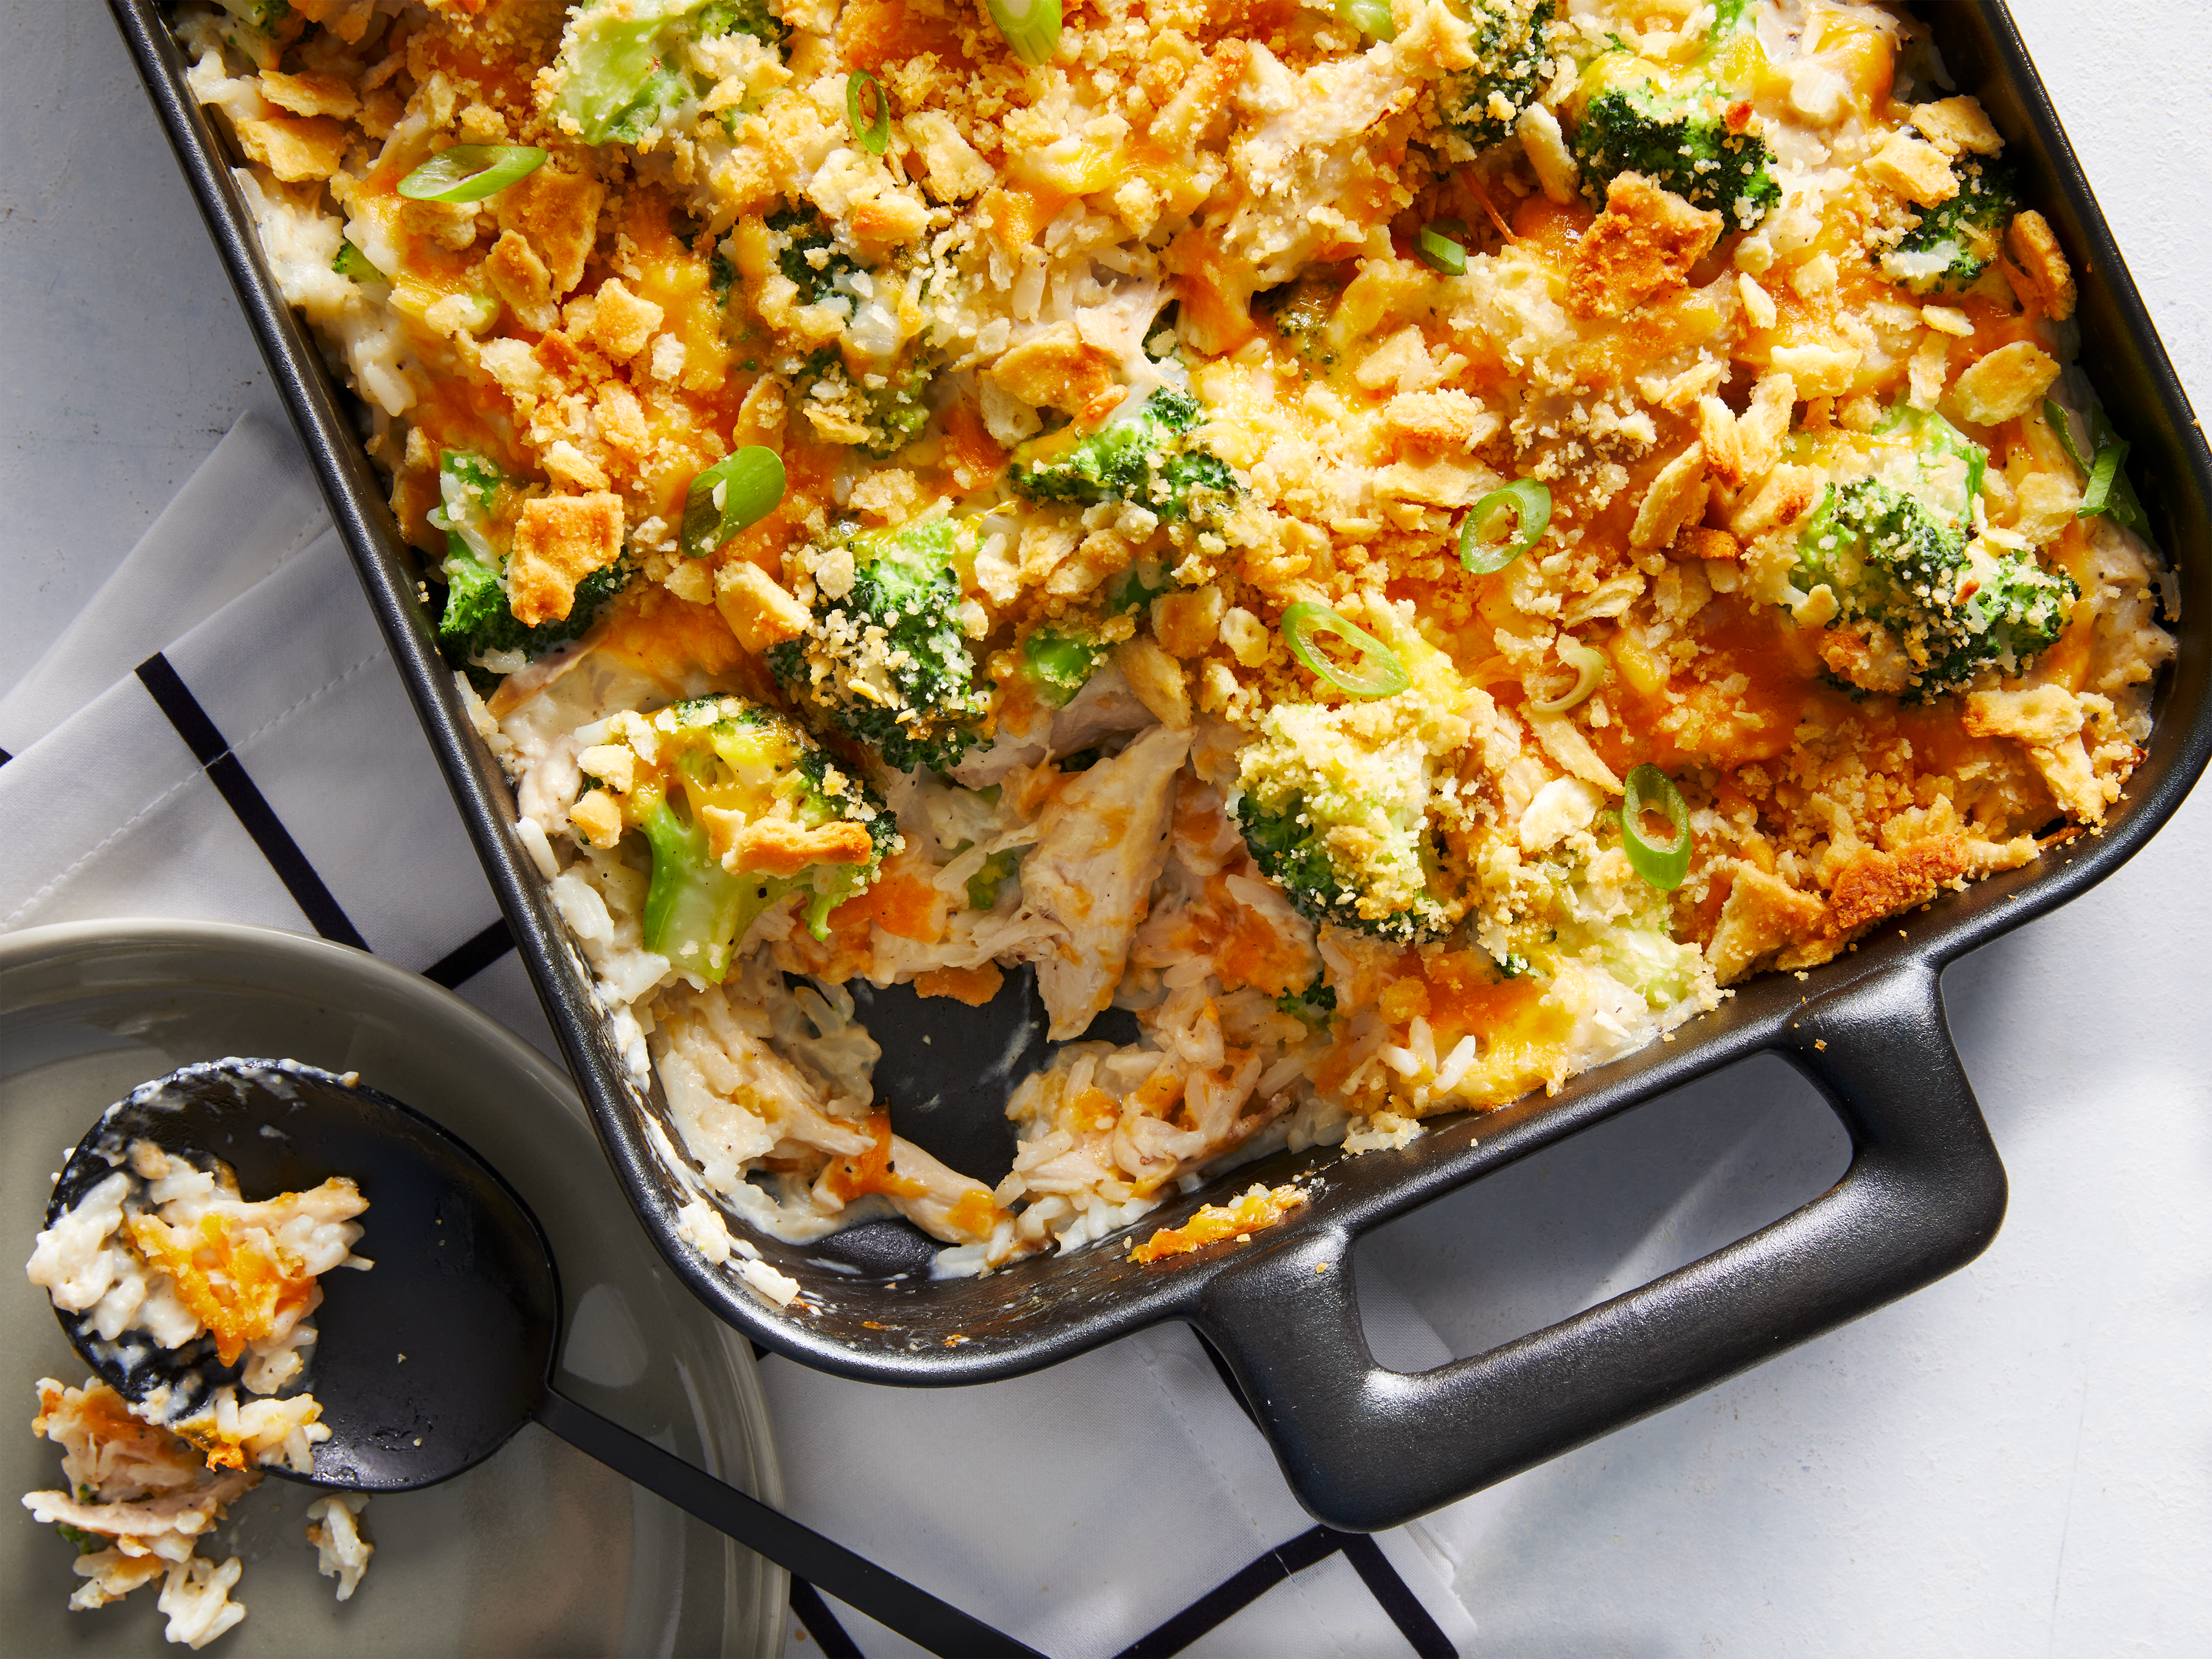 mr - Cheesy Chicken and Rice Casserole Image